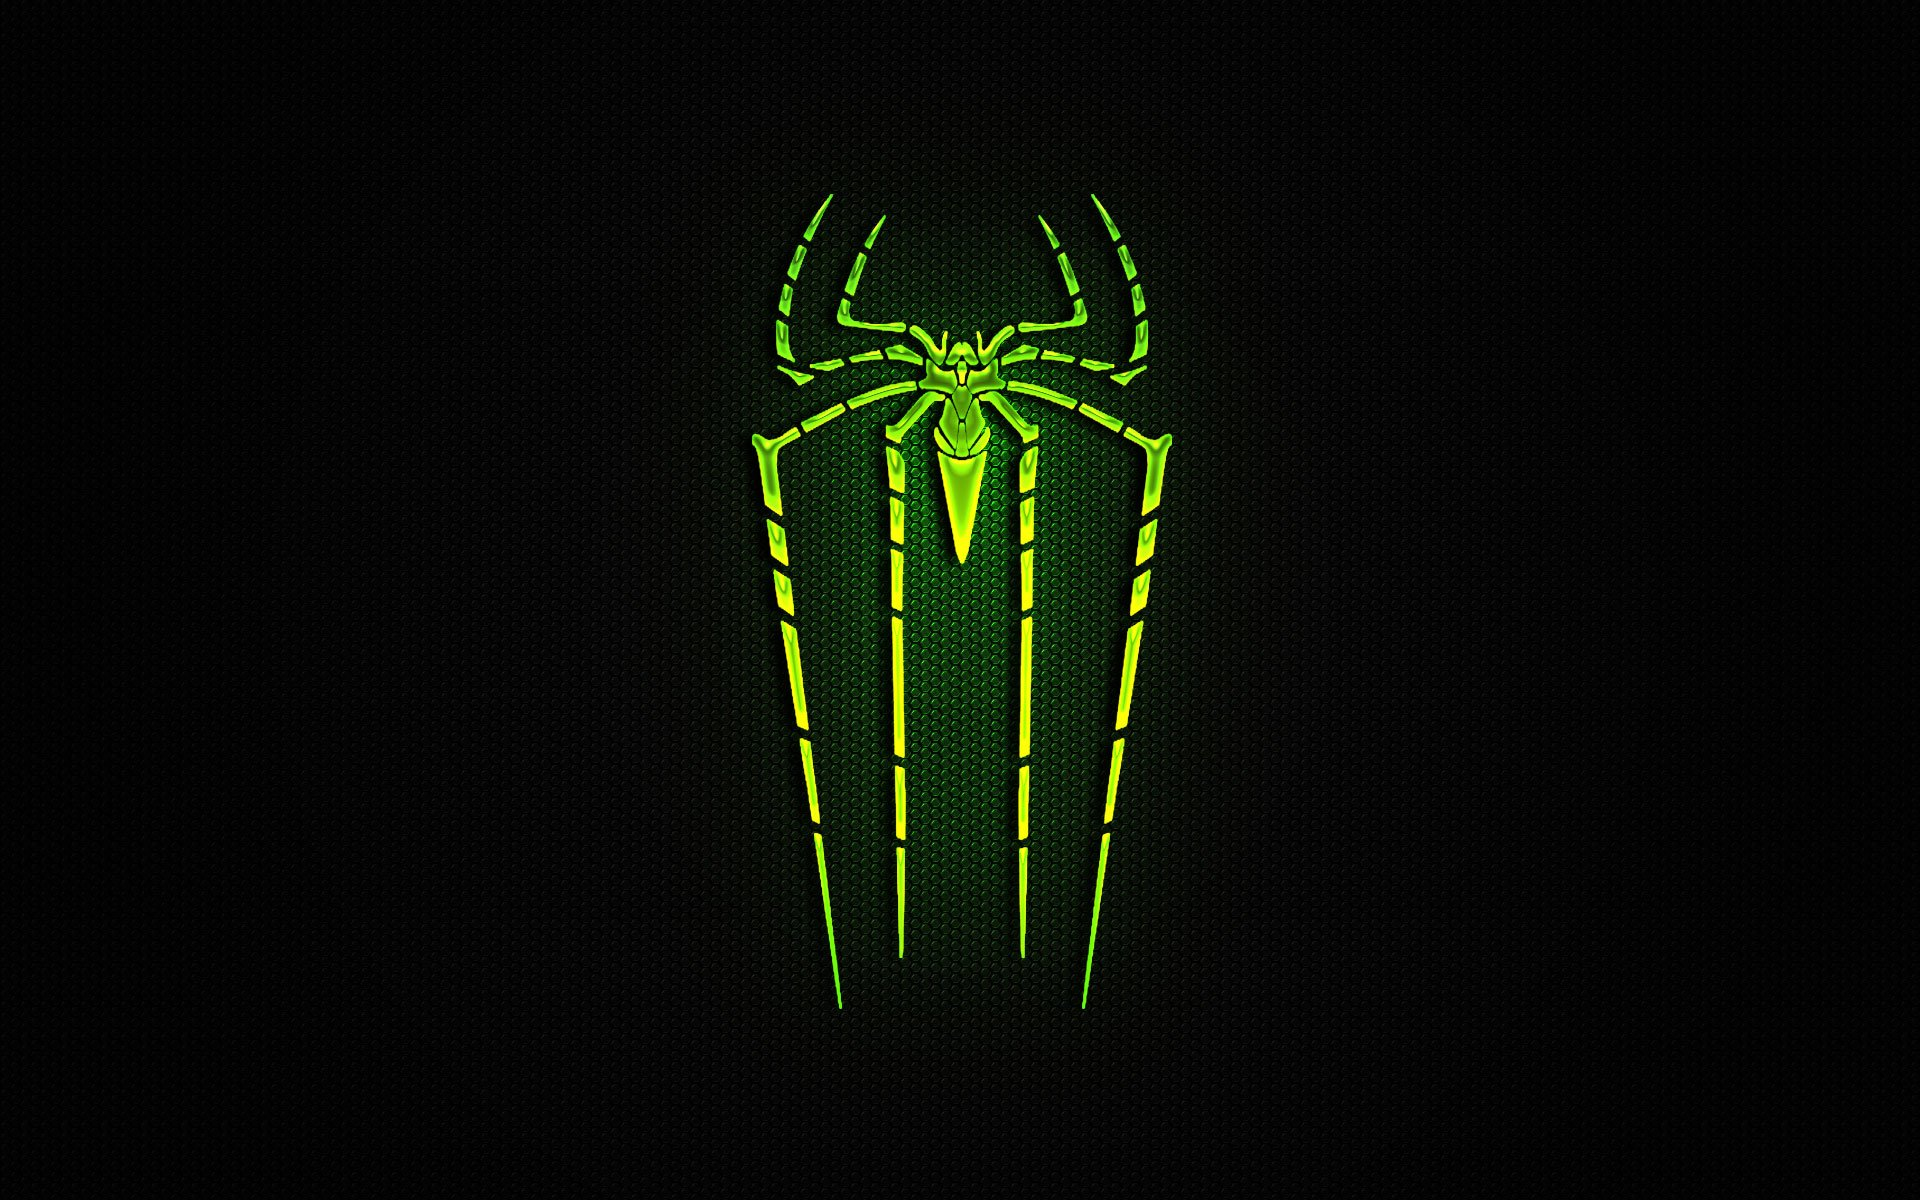 hd spiderman logo wallpaper wallpapersafari